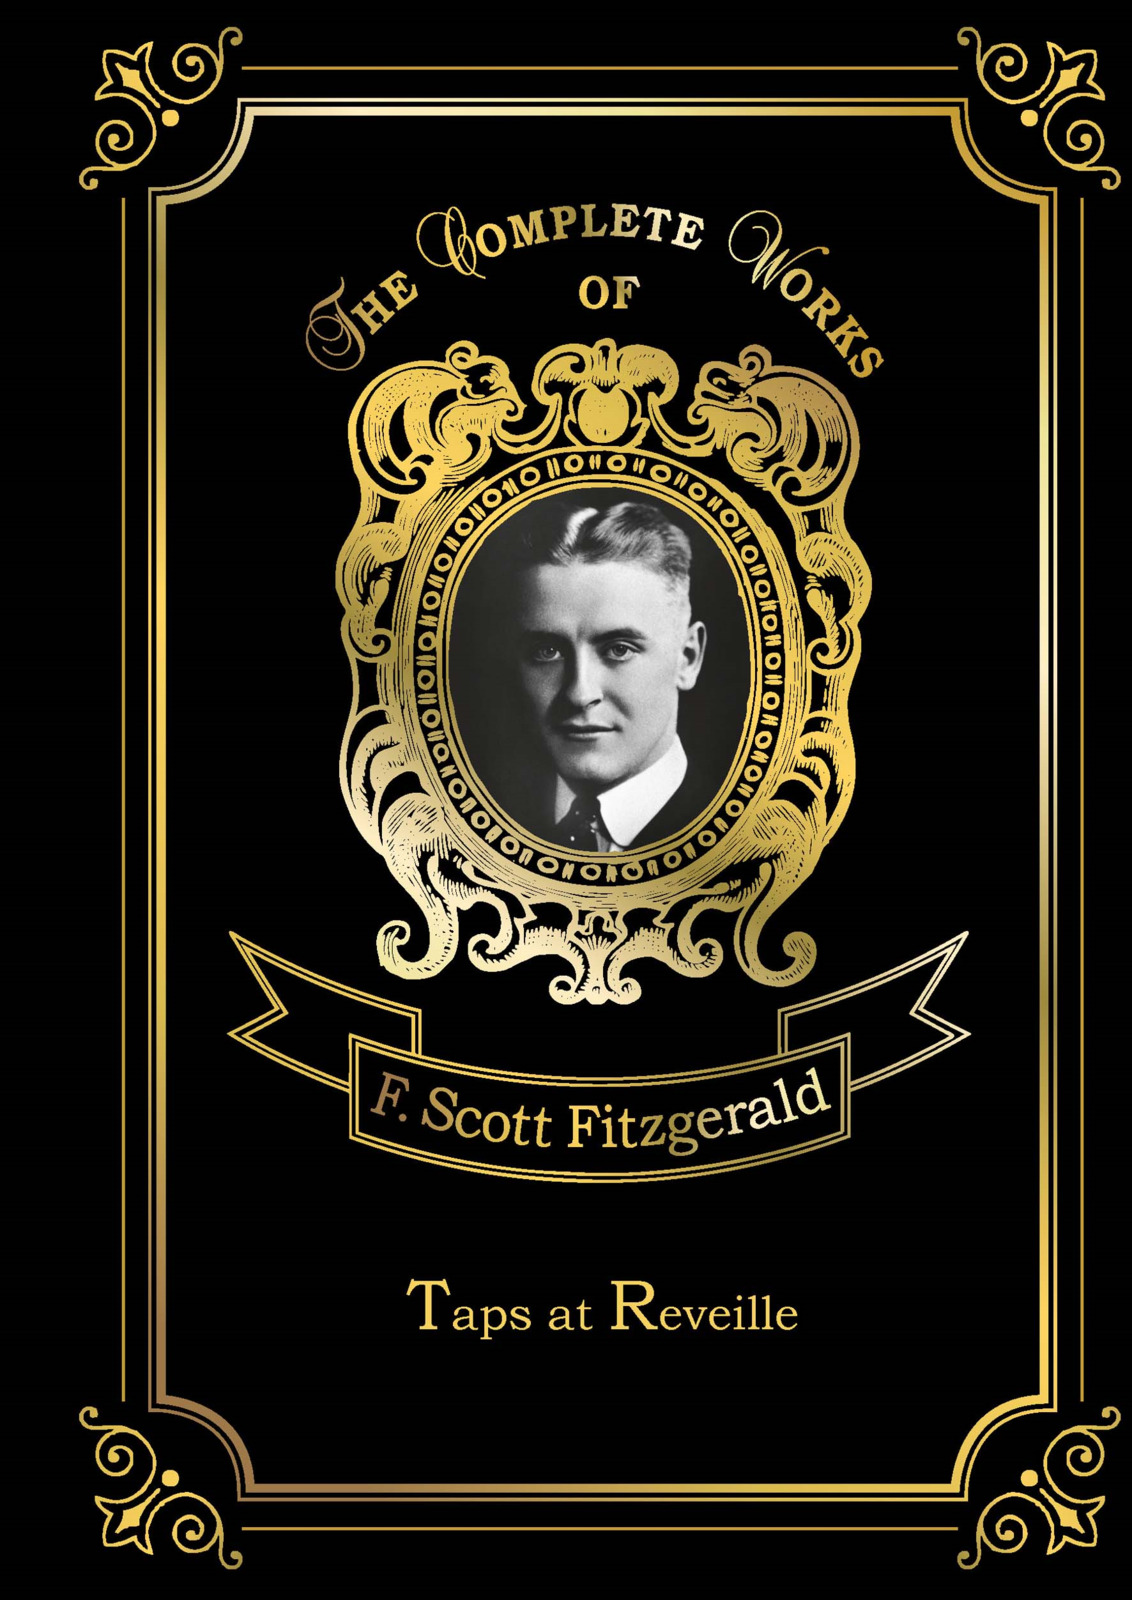 F. S. Fitzgerald Taps at Reveille the american civil war